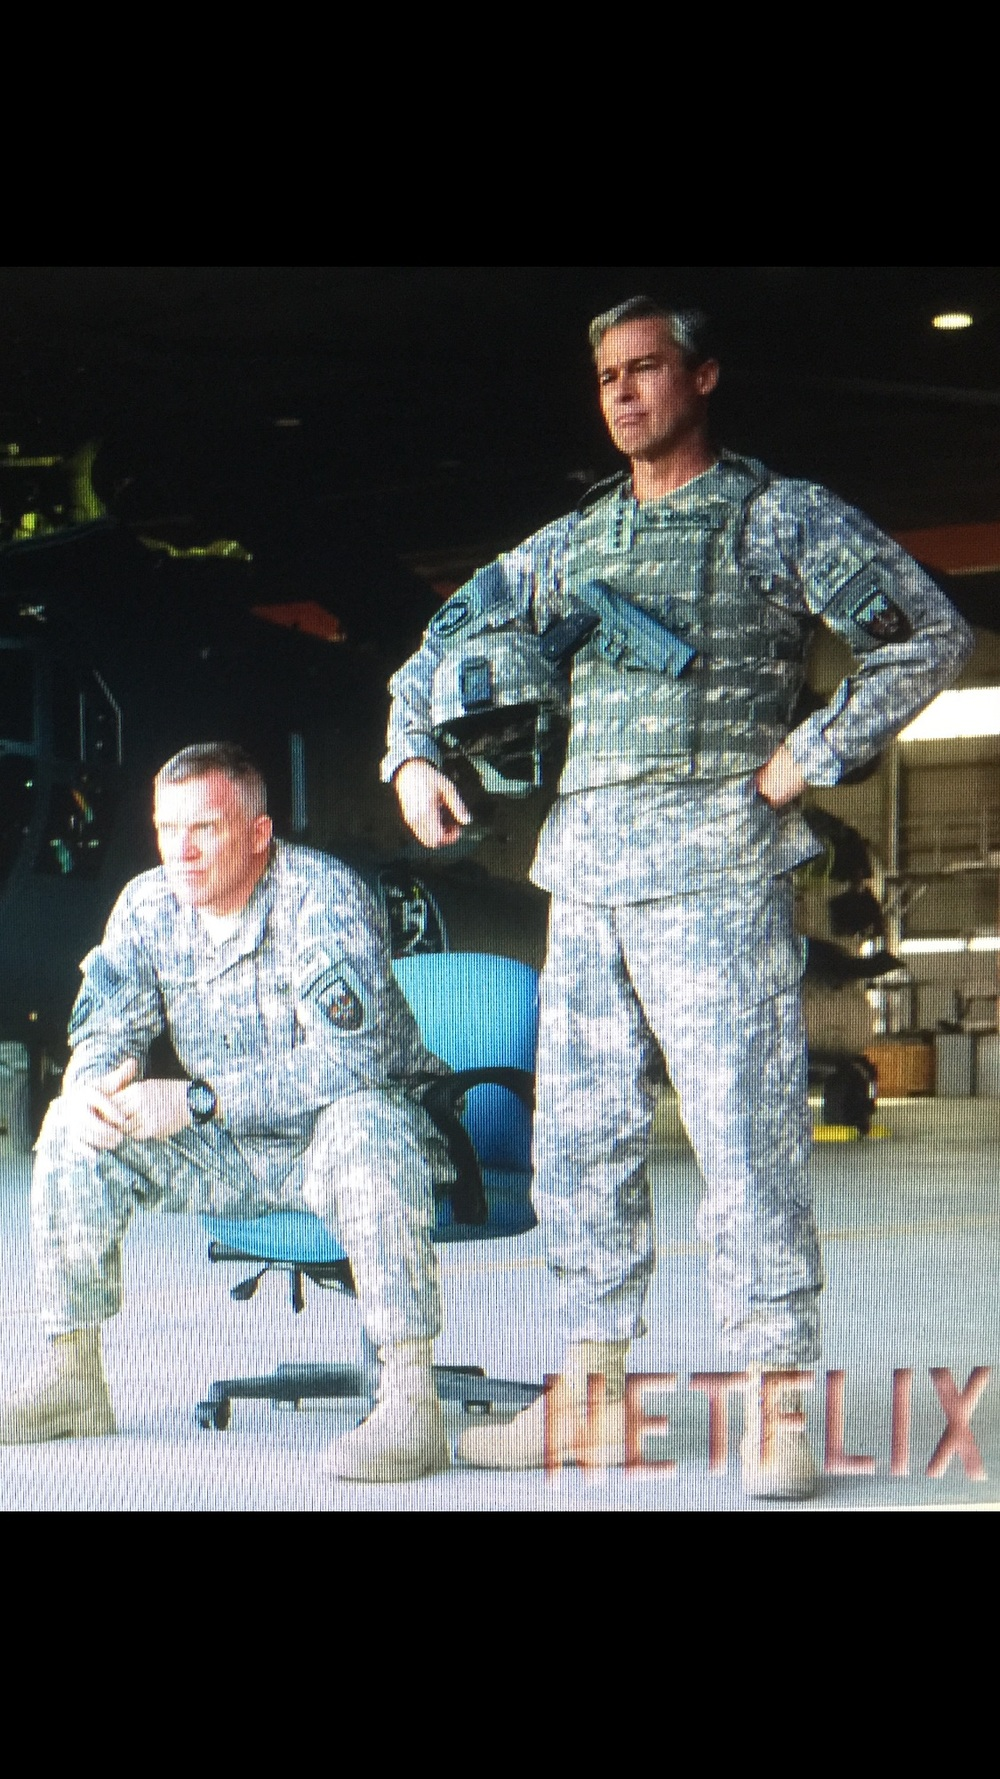 "The Generals:  HALL is 'General Greg Pulver'.  PITT(R) is 'General  Glenn McMahon'- two United States Army Generals in the NETFLIX original film,""WAR MACHINE"". The film is based on Michael Hastings'        2012,  NY Times bestselling book ""The Operators"" which chronicled the events of the Iraq war.  The book also focuses on the rise of former U.S. Army General Stanley McCrystal, as he lead the U.S. troops in      Iraq -- then later in the Afghanistan war. Mr. Pitts'company, Plan B purchased the film rights for the book in 2015,  and enlisted Australian filmmaker David Michôd to adapt the screenplay and direct the film -- which became ""War Machine."""